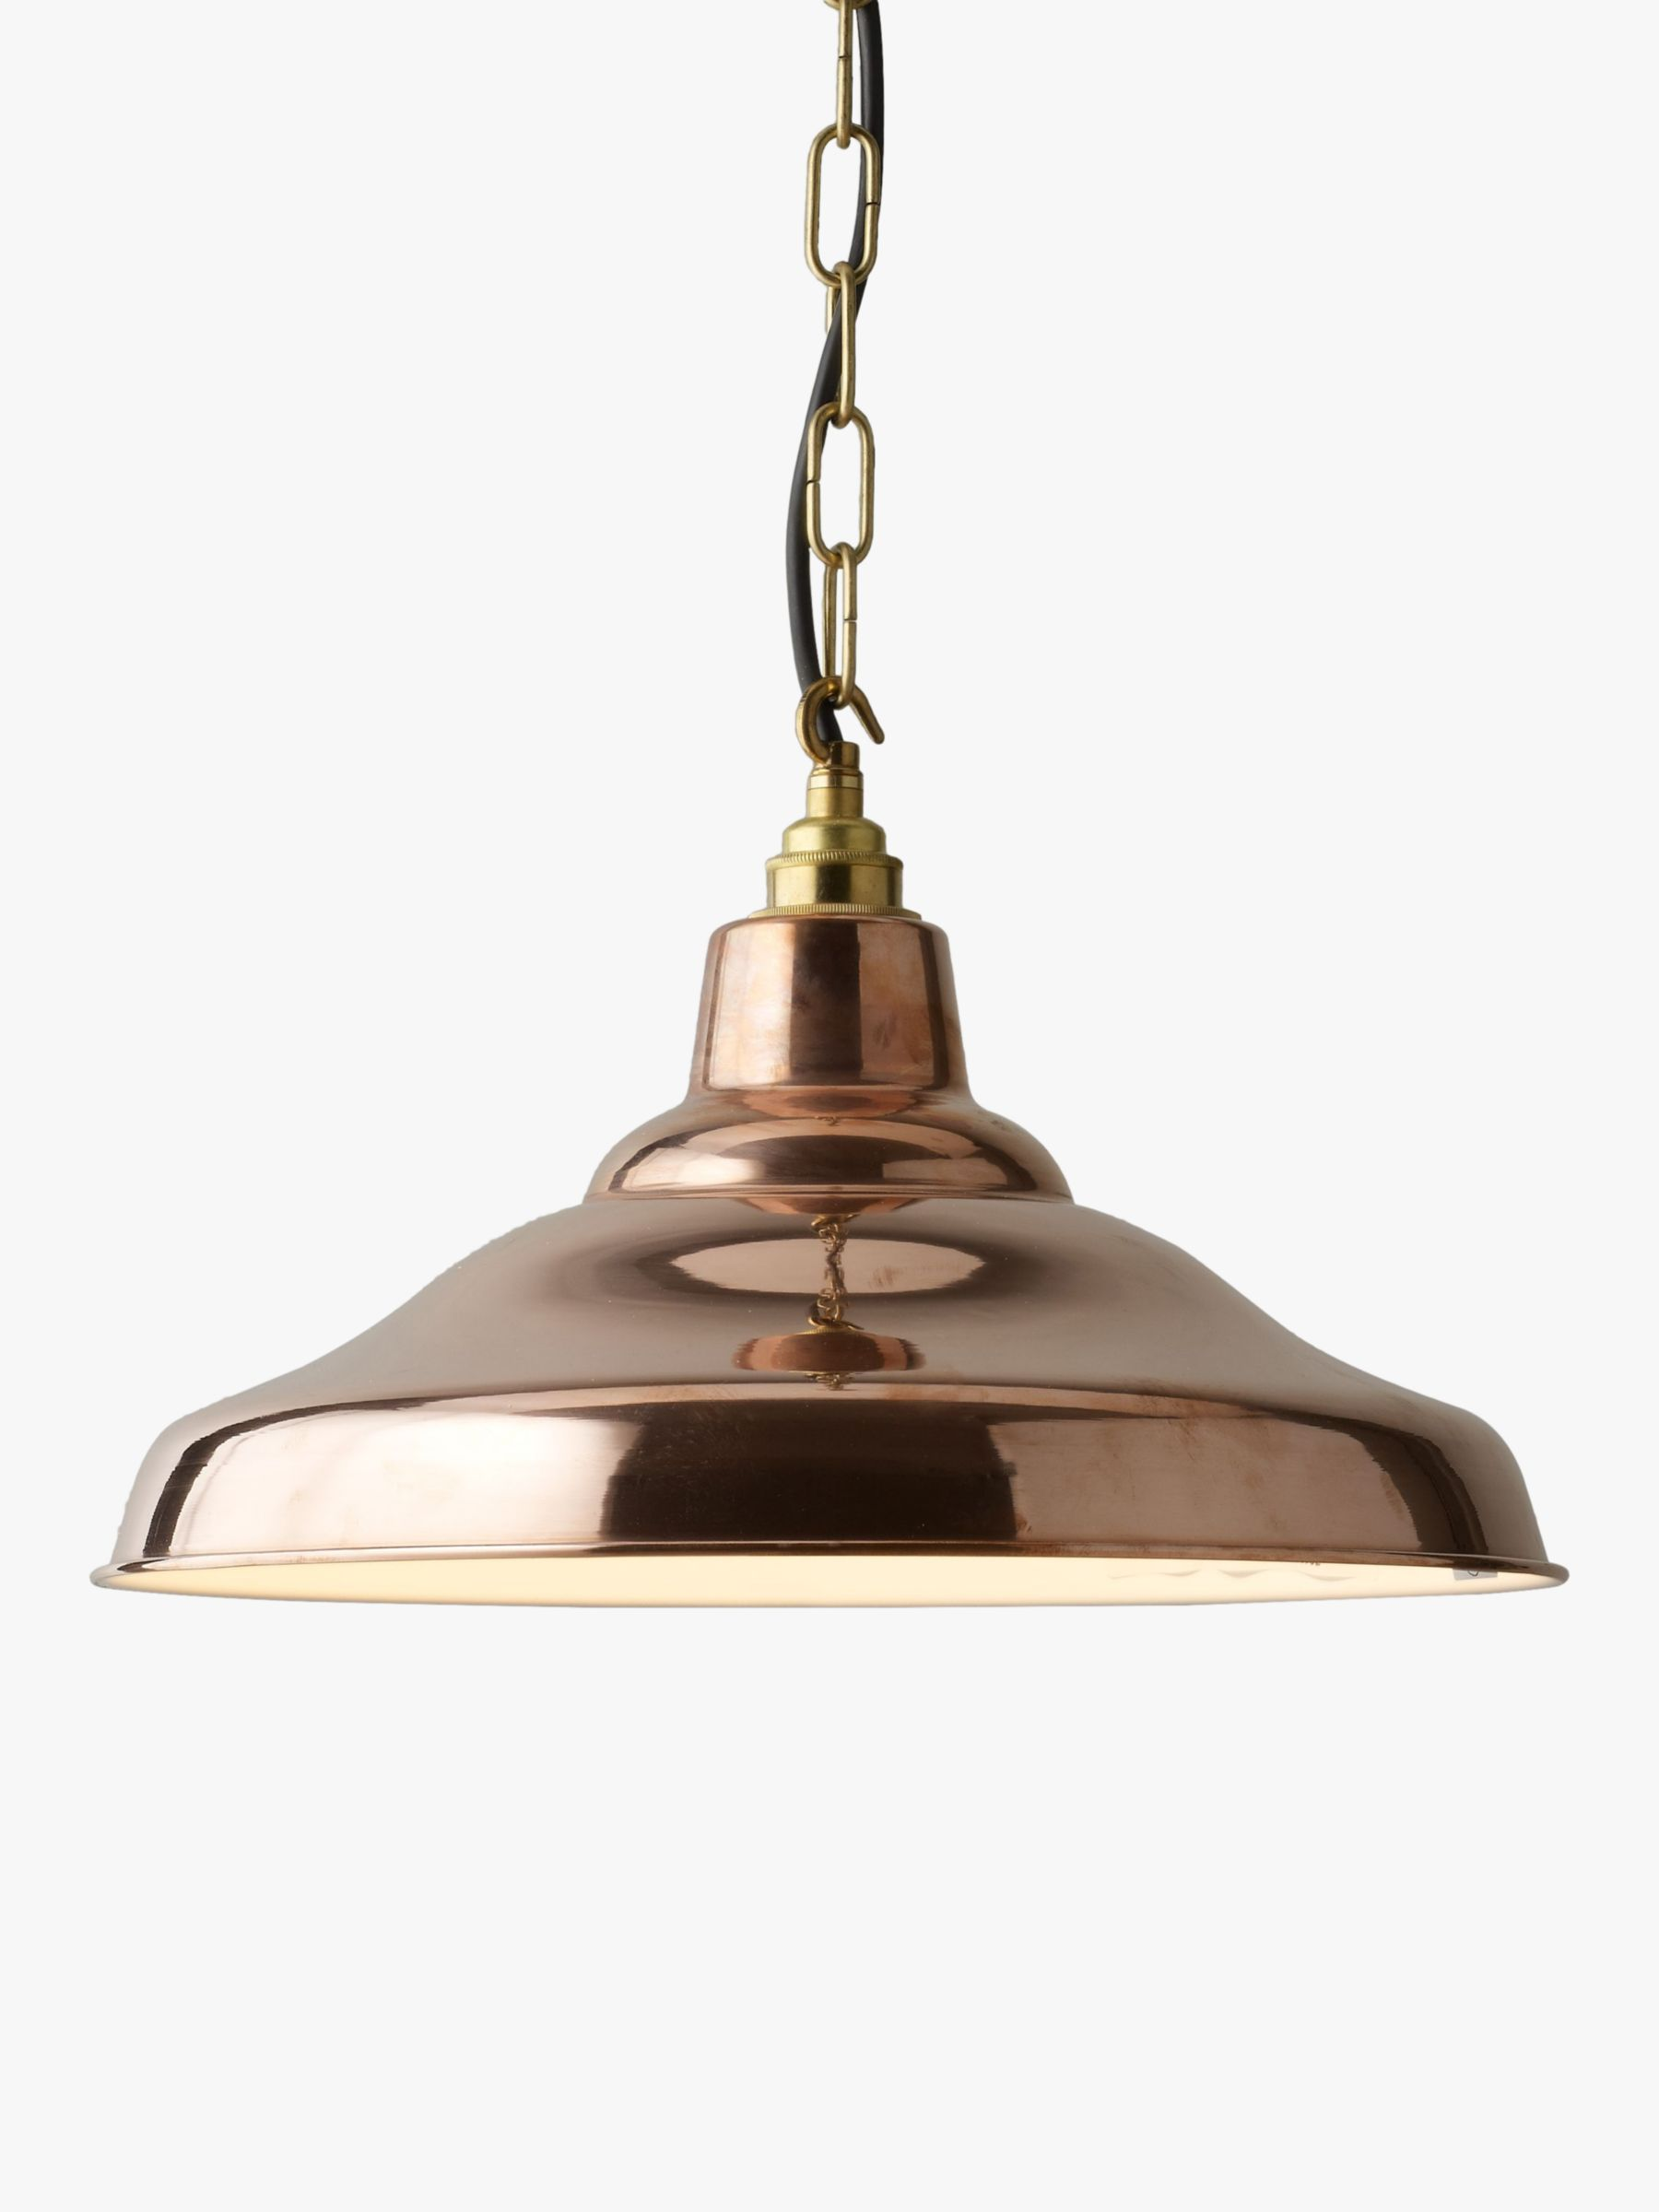 Ceiling Lights In Copper : Davey factory ceiling light copper review compare